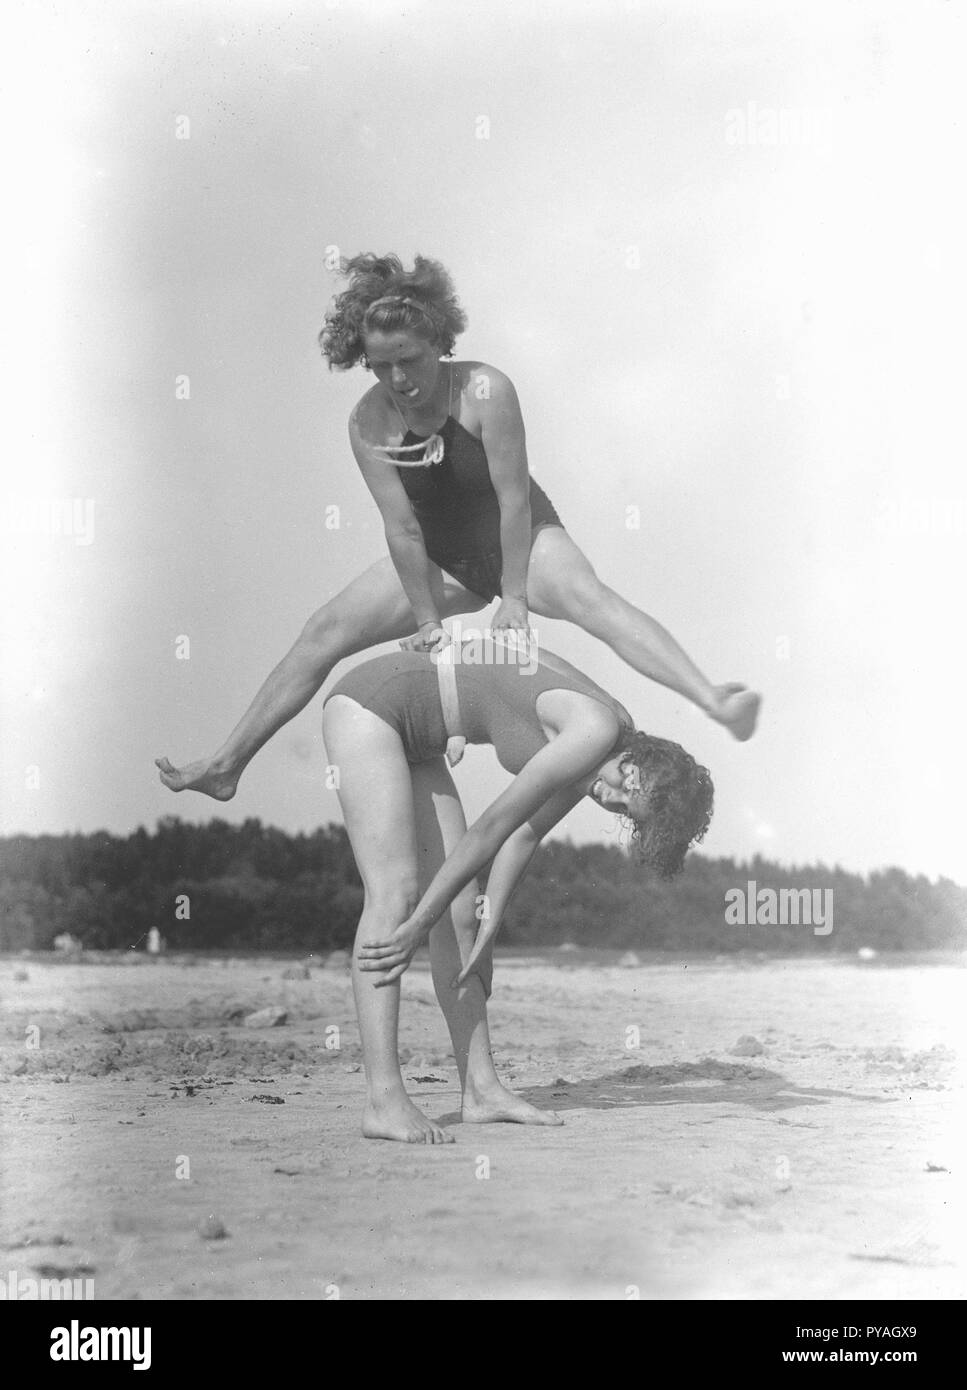 On the beach in the 1930s. Two women in bathing suits are playing around on the beach. Sweden 1939. Photo Kristoffersson ref 10-2 - Stock Image